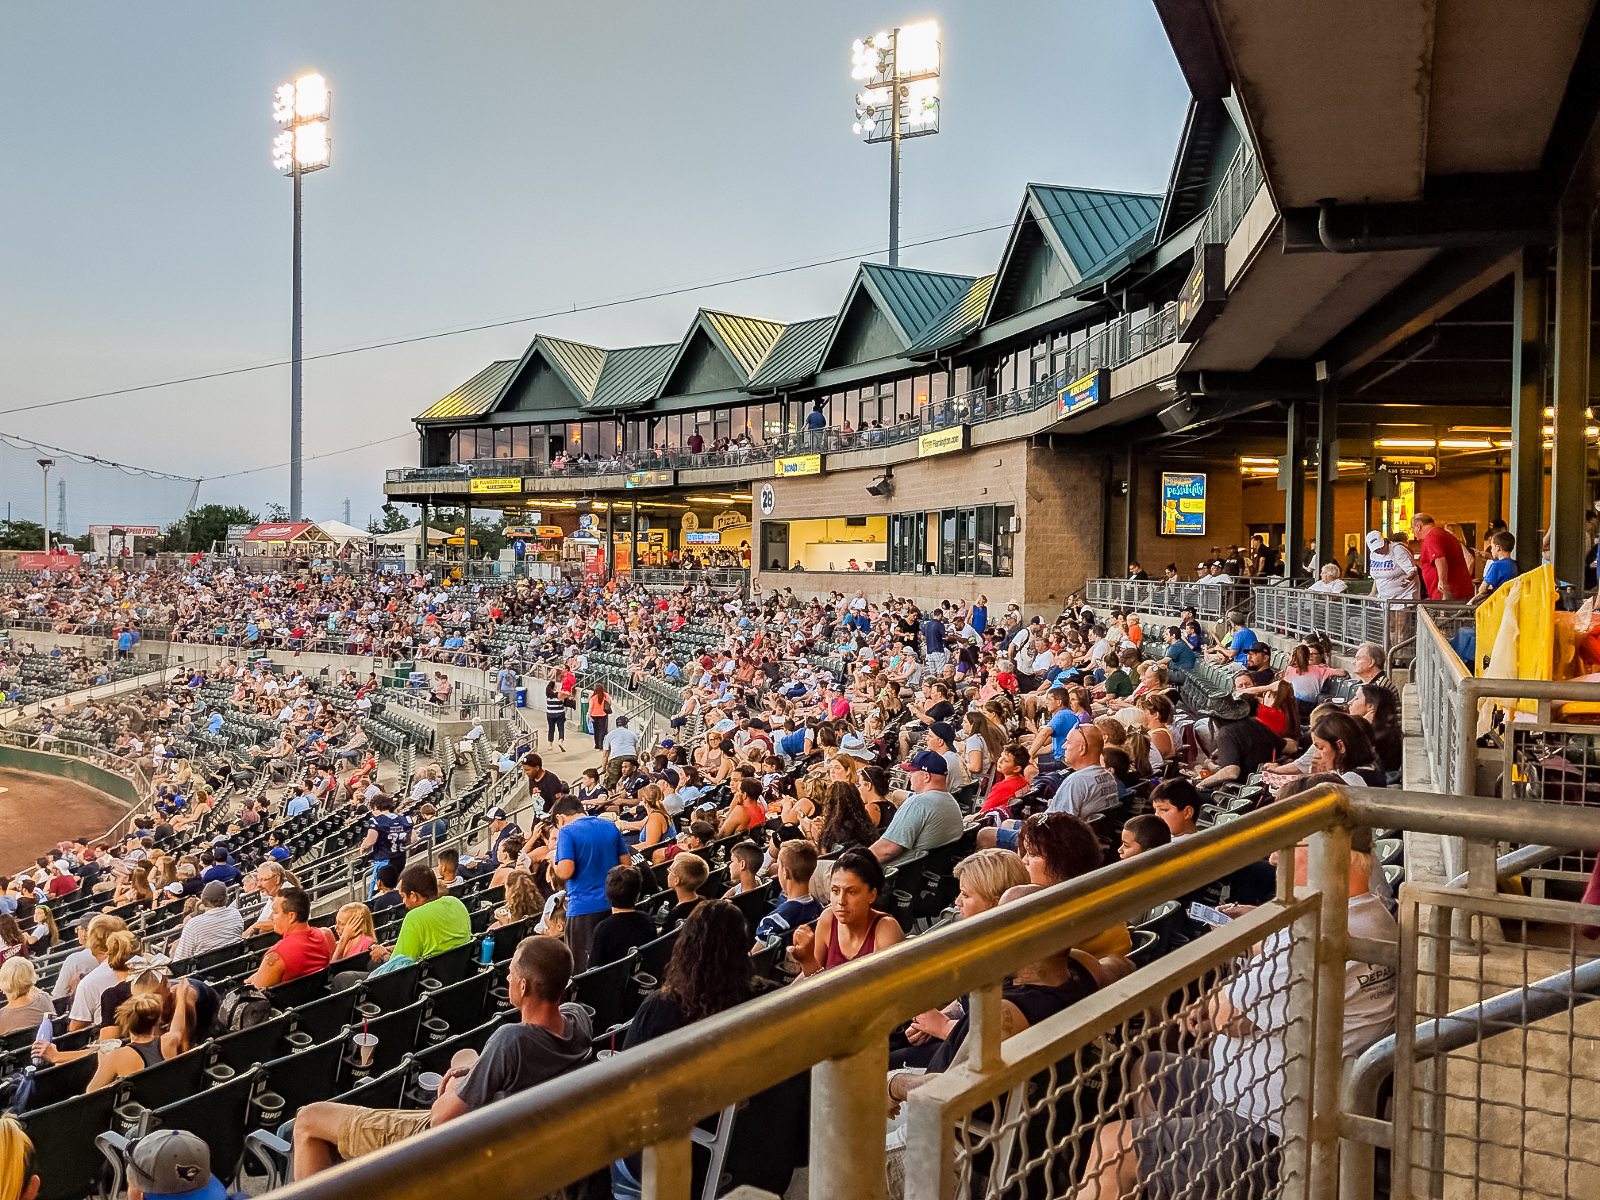 Somerset Patriots 2018-193446.jpg